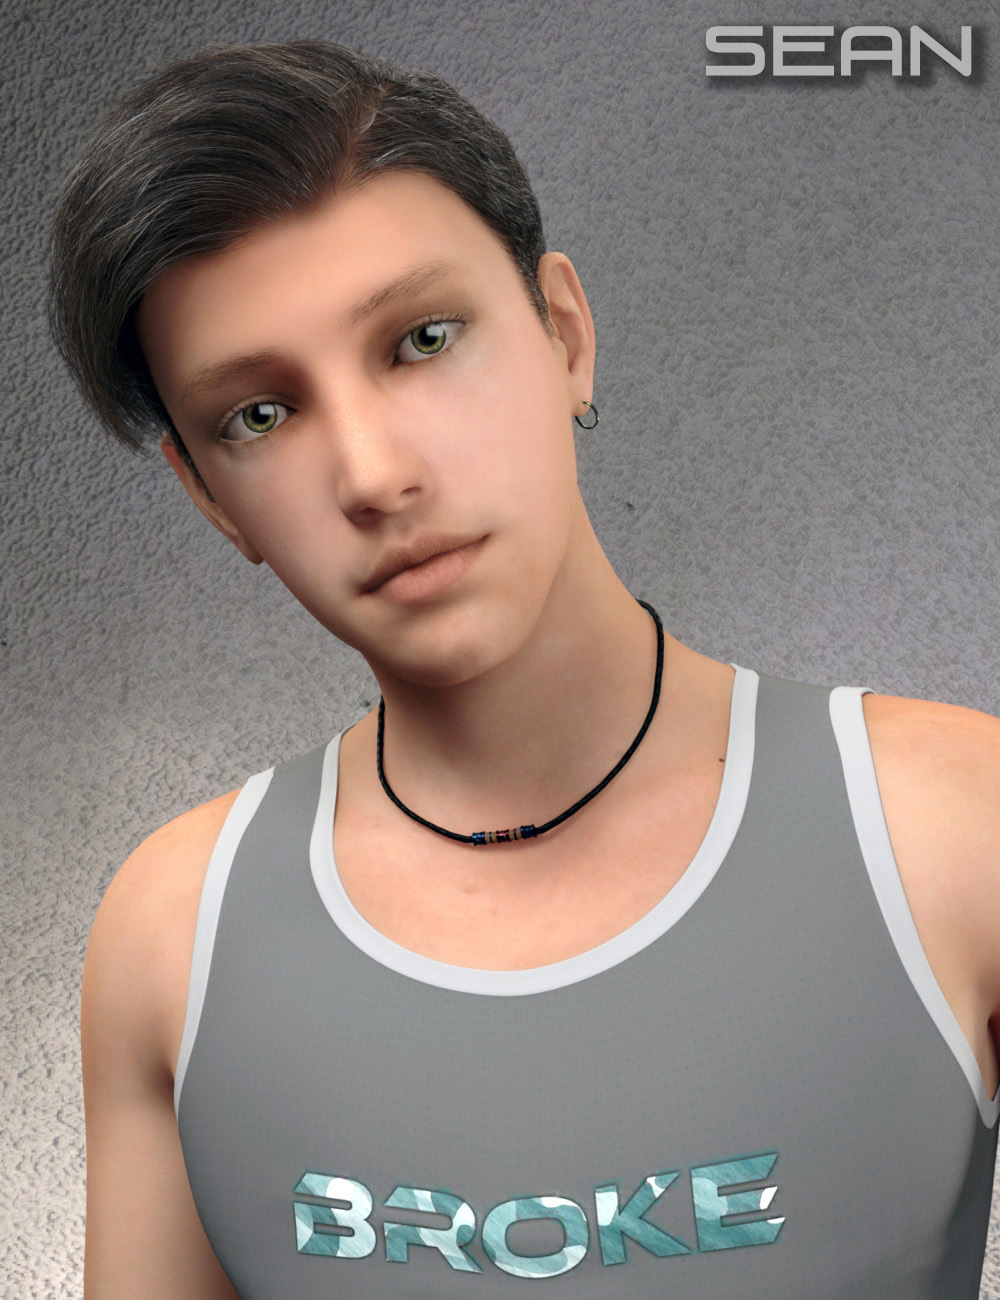 Sean for Genesis 8 Male